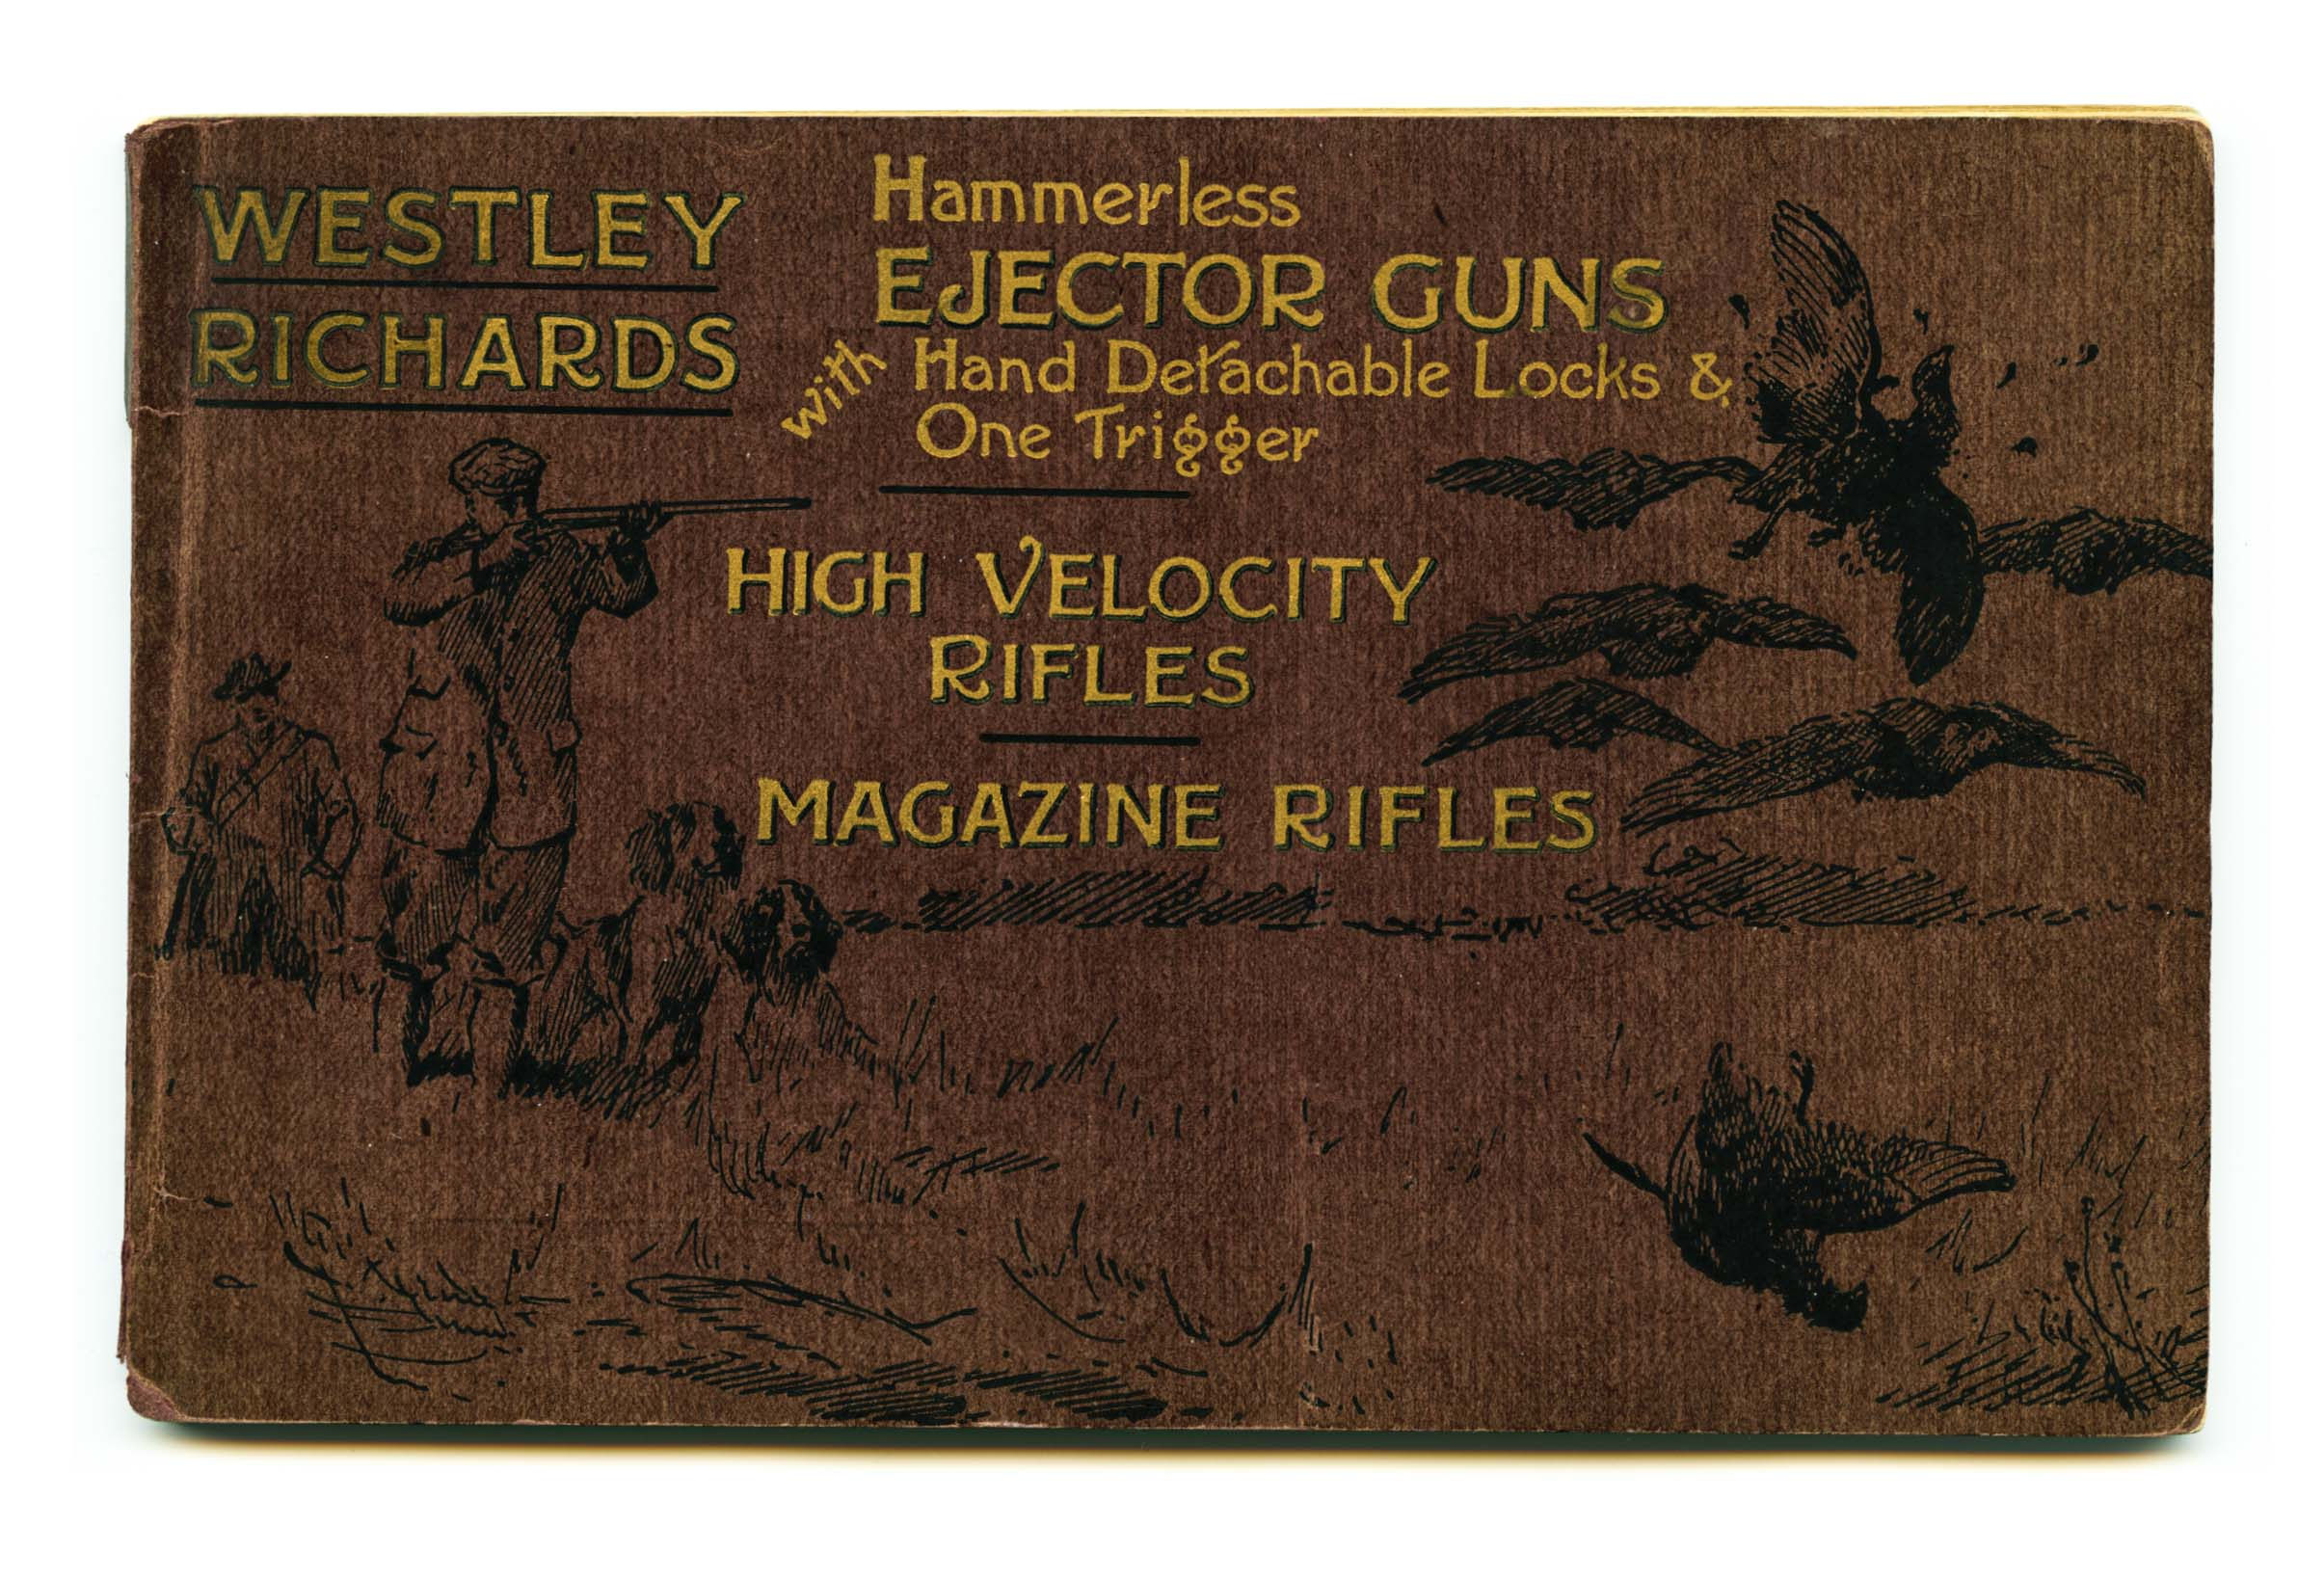 1900 Westley Richards Gun & Rifle Catalogue.